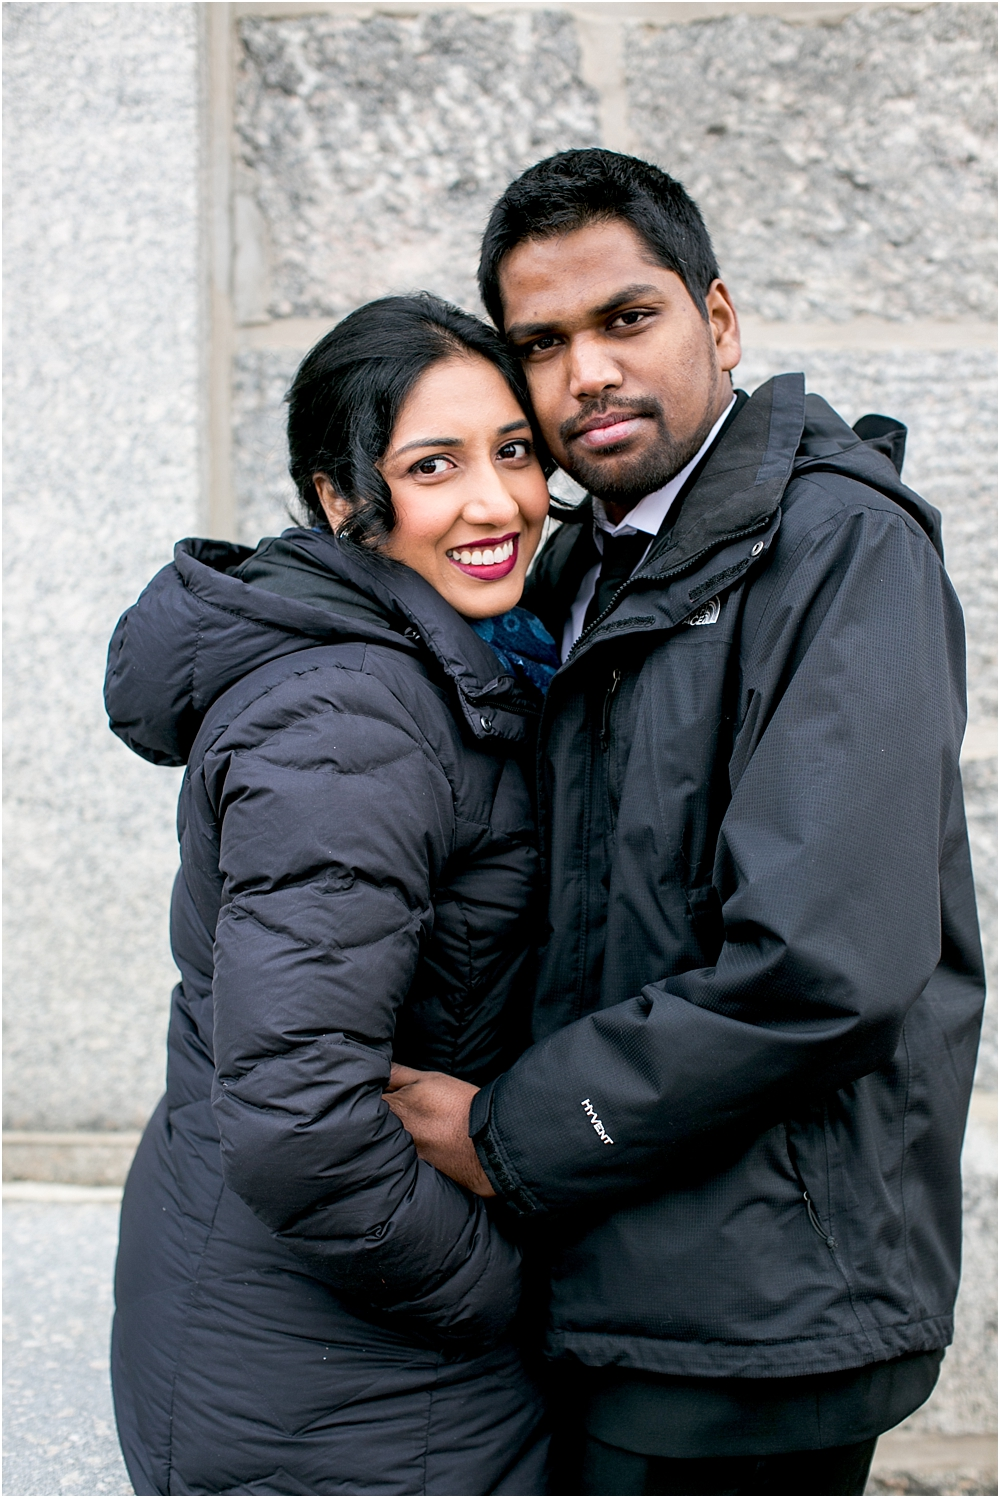 neelima praveen maryland courthouse wedding living radiant photography_0031.jpg